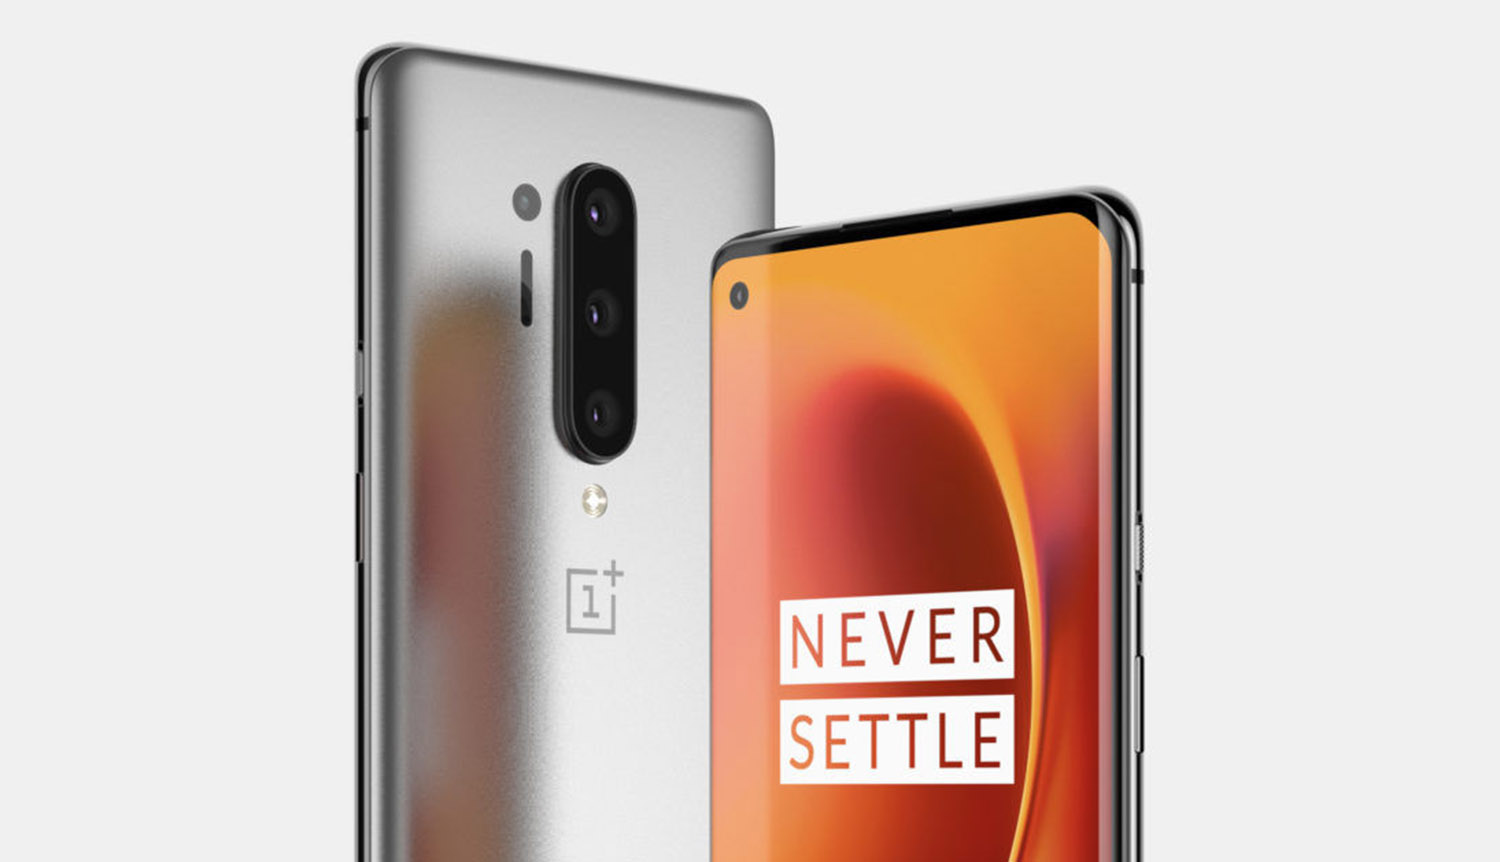 OnePlus 8 Launch Happening in Q2 2020, According to One Tipster